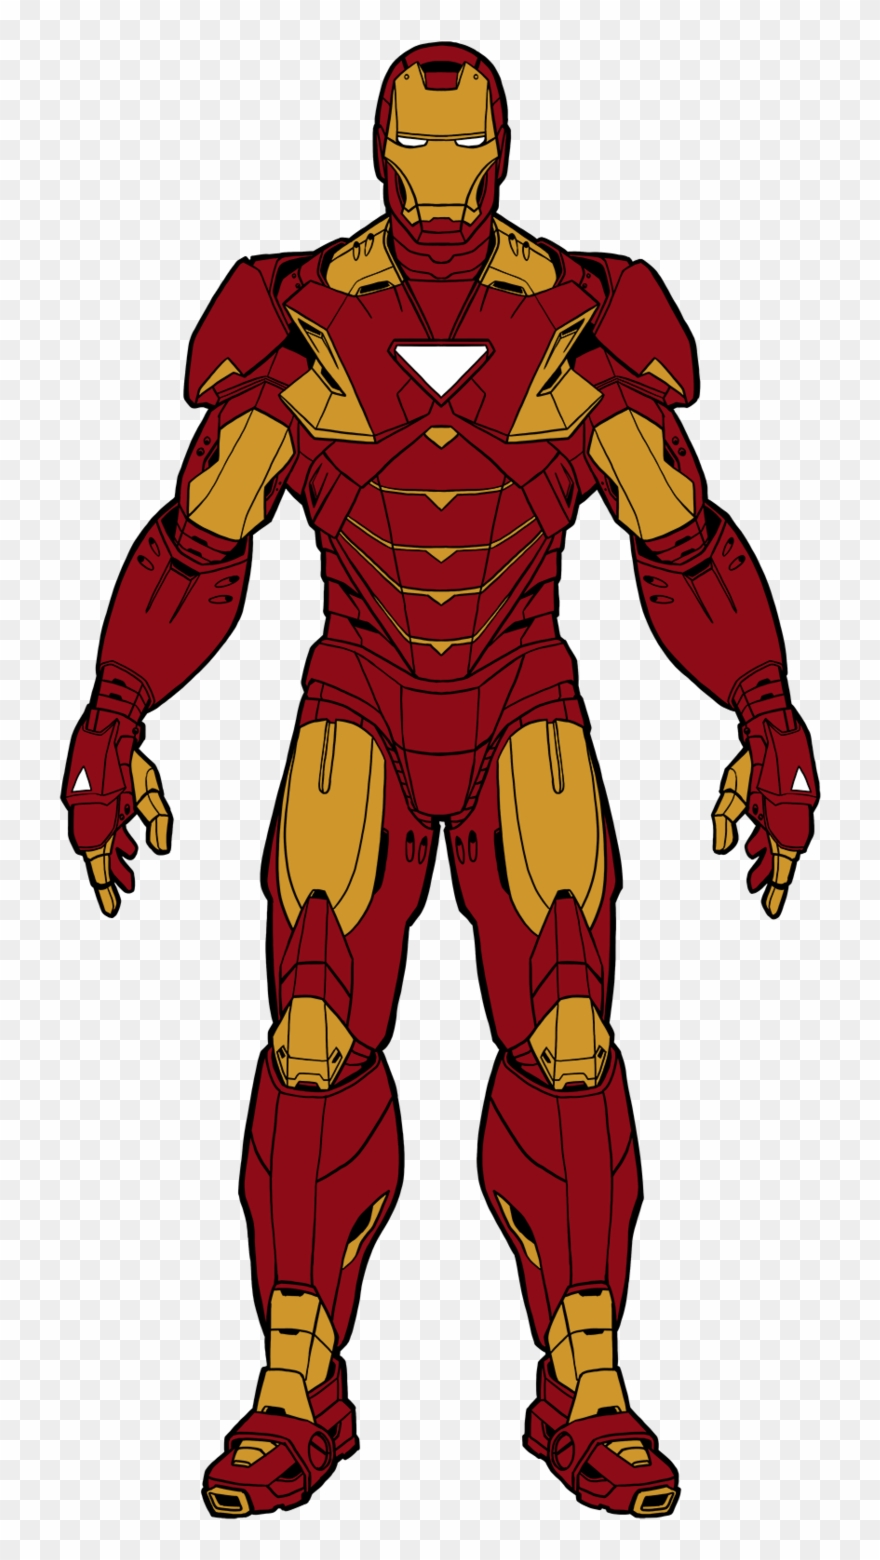 Avengers clipart body. Collection of iron man